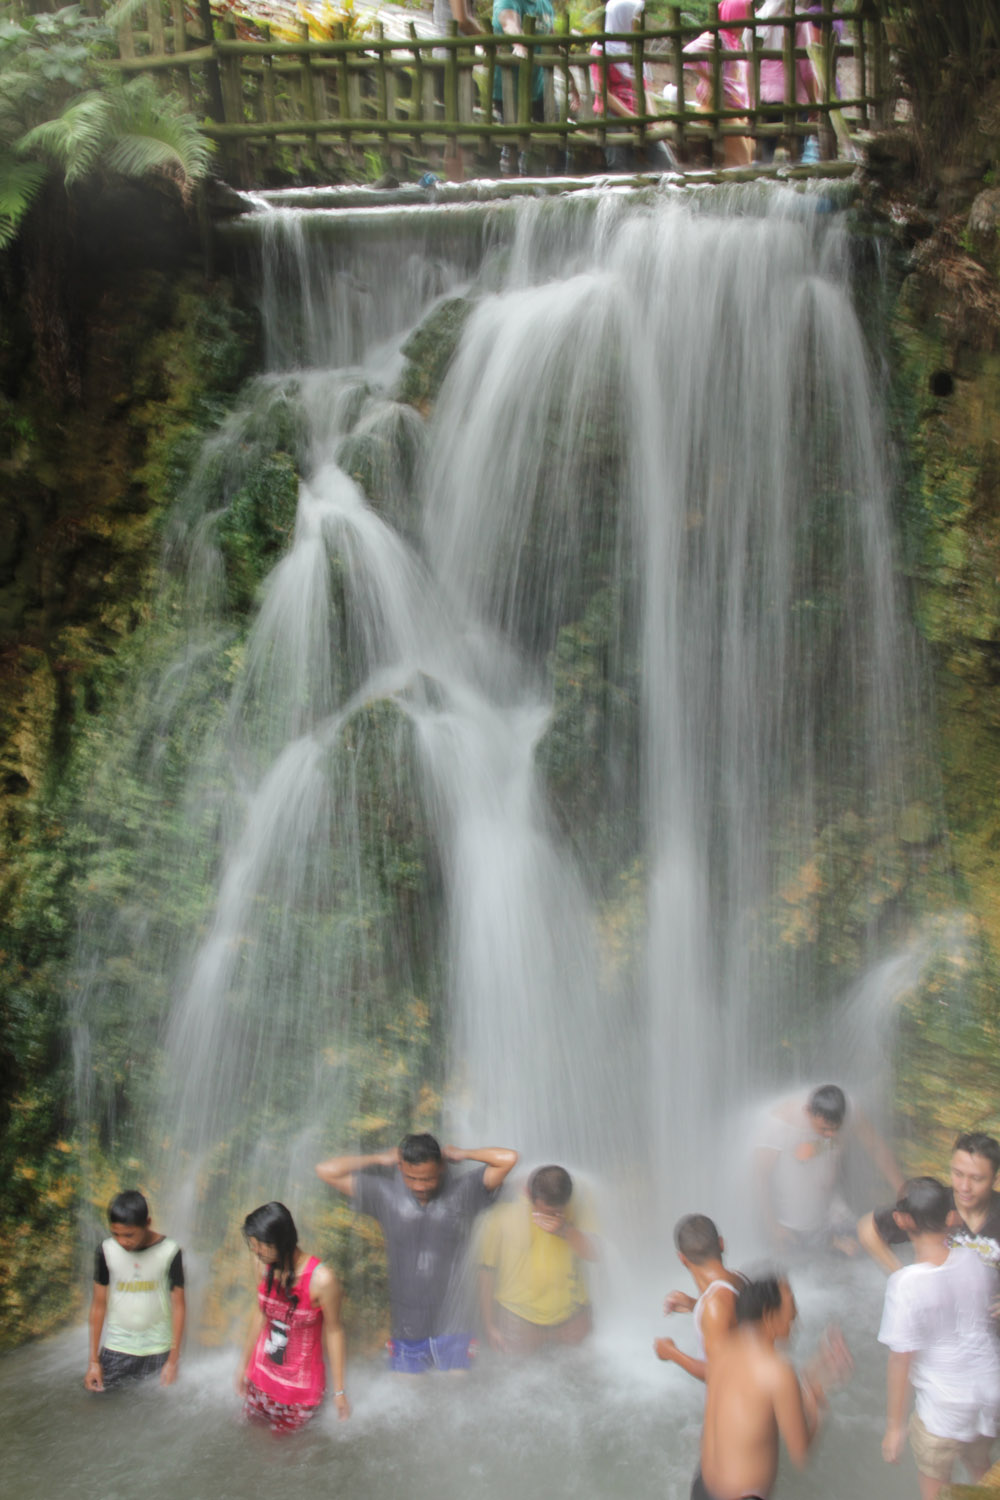 CIATER HOT SPRING amp; WATER FALL